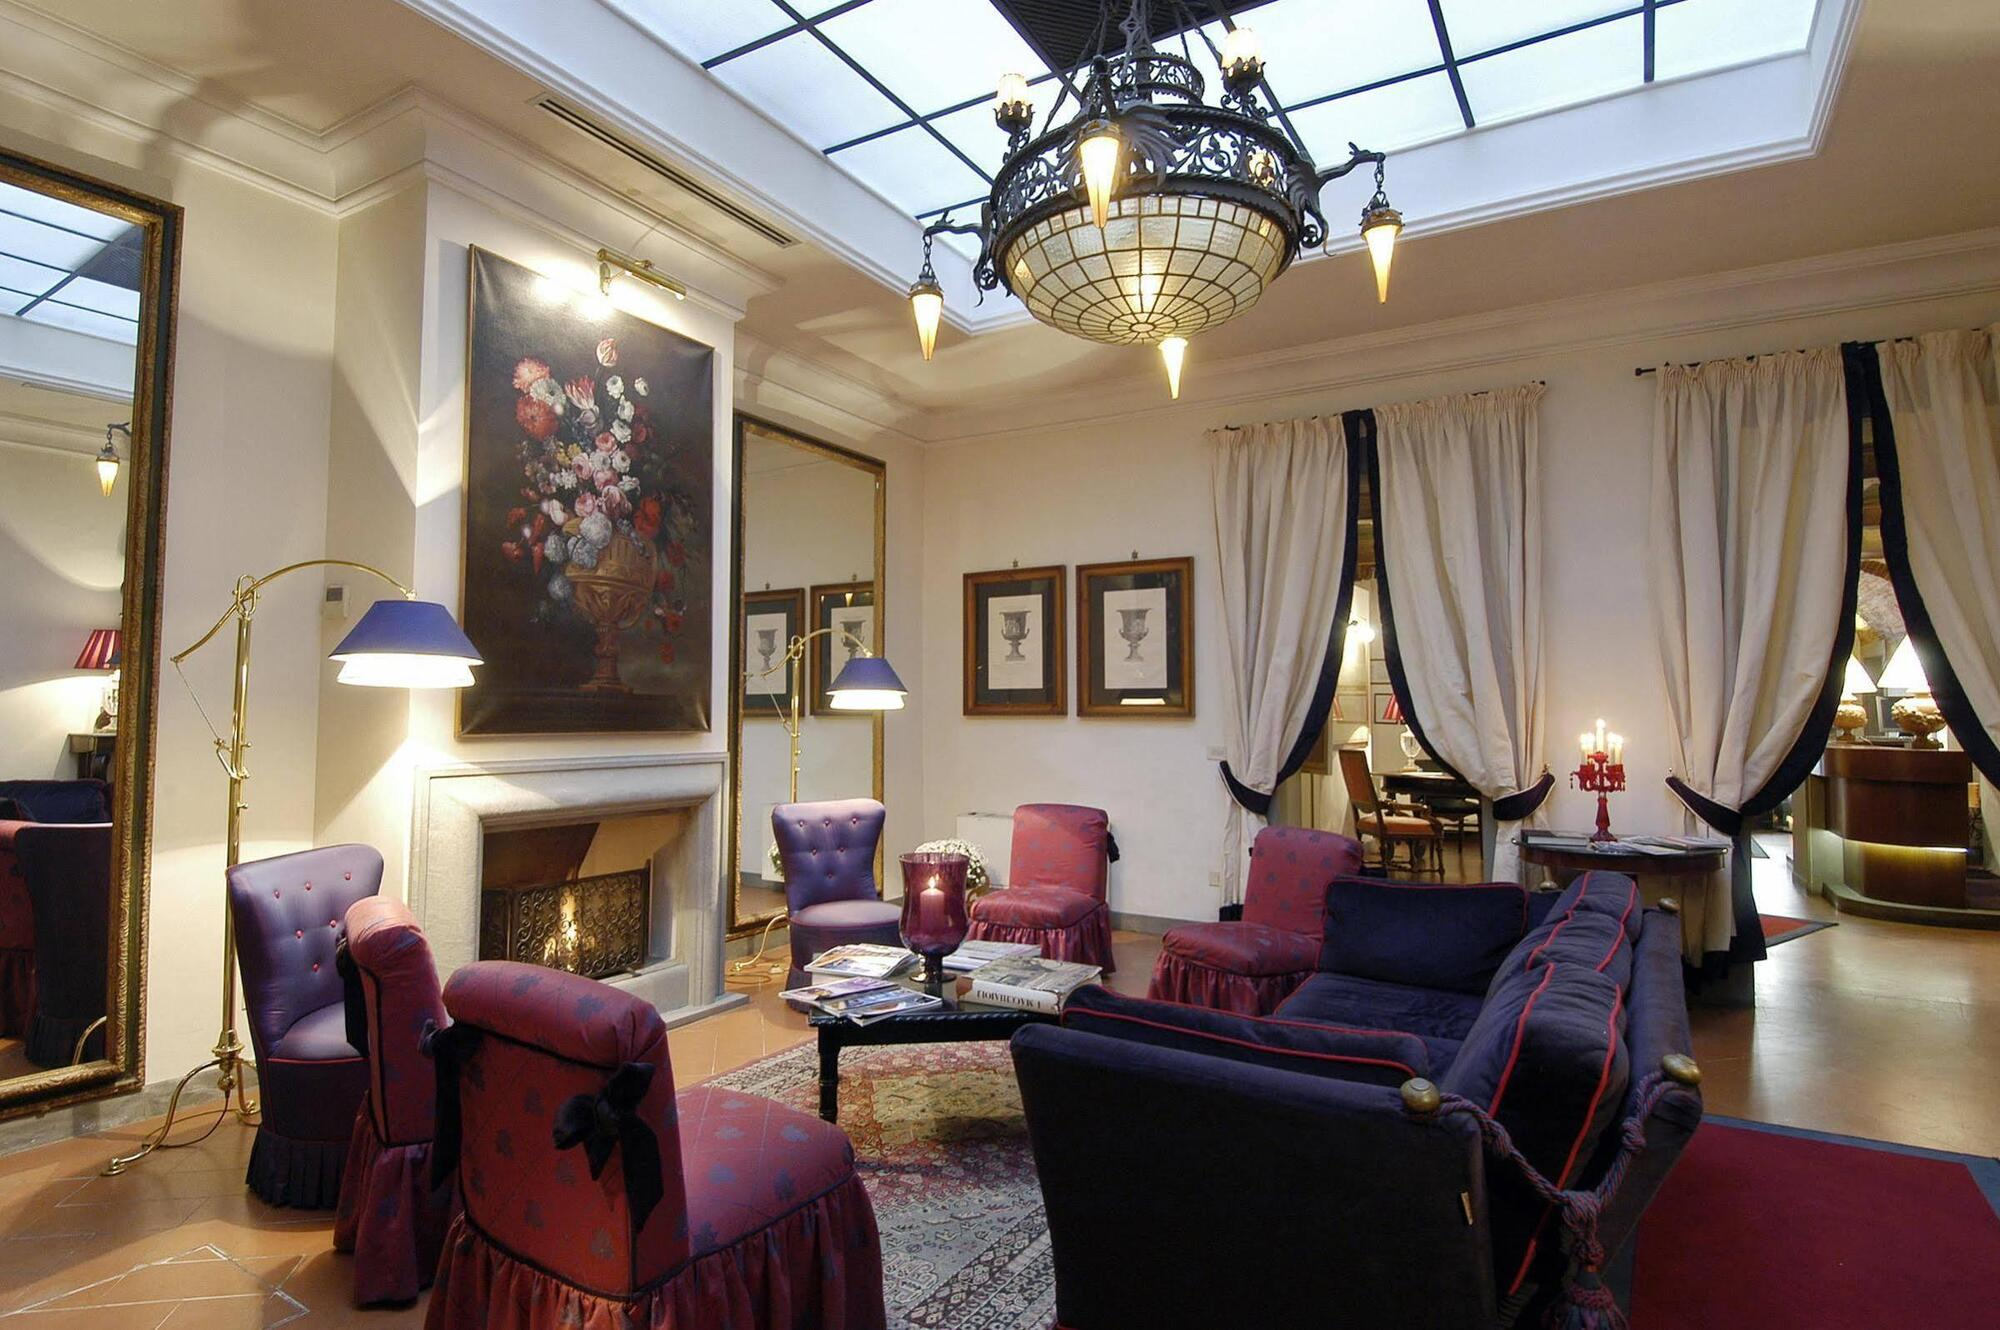 Cellai Boutique Hotel, Florence Image 0